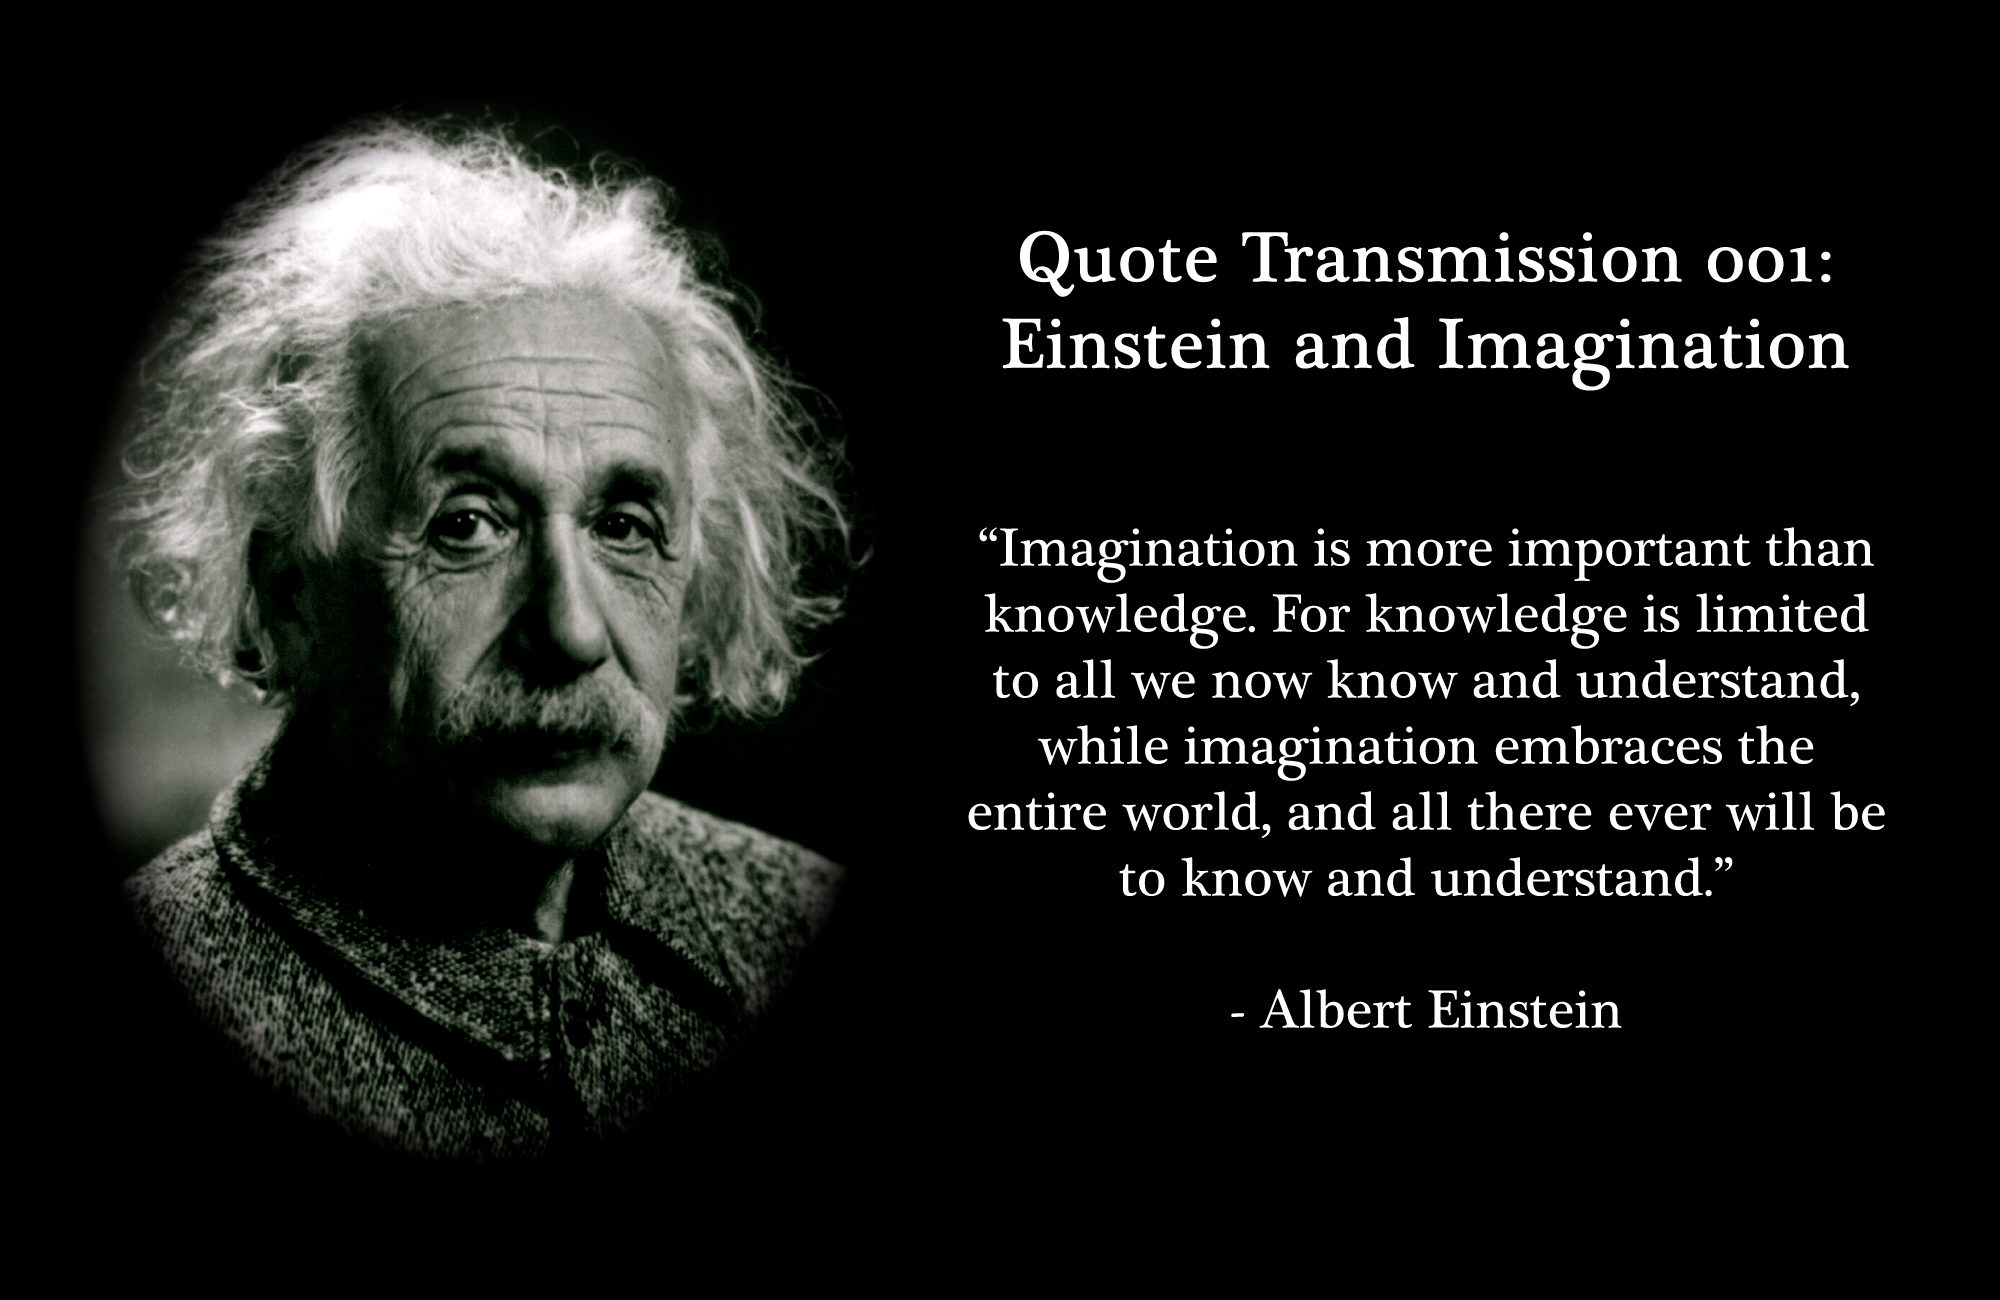 Einstein-imagination-is-more-important-than-knowledge-imagination-quote.jpg